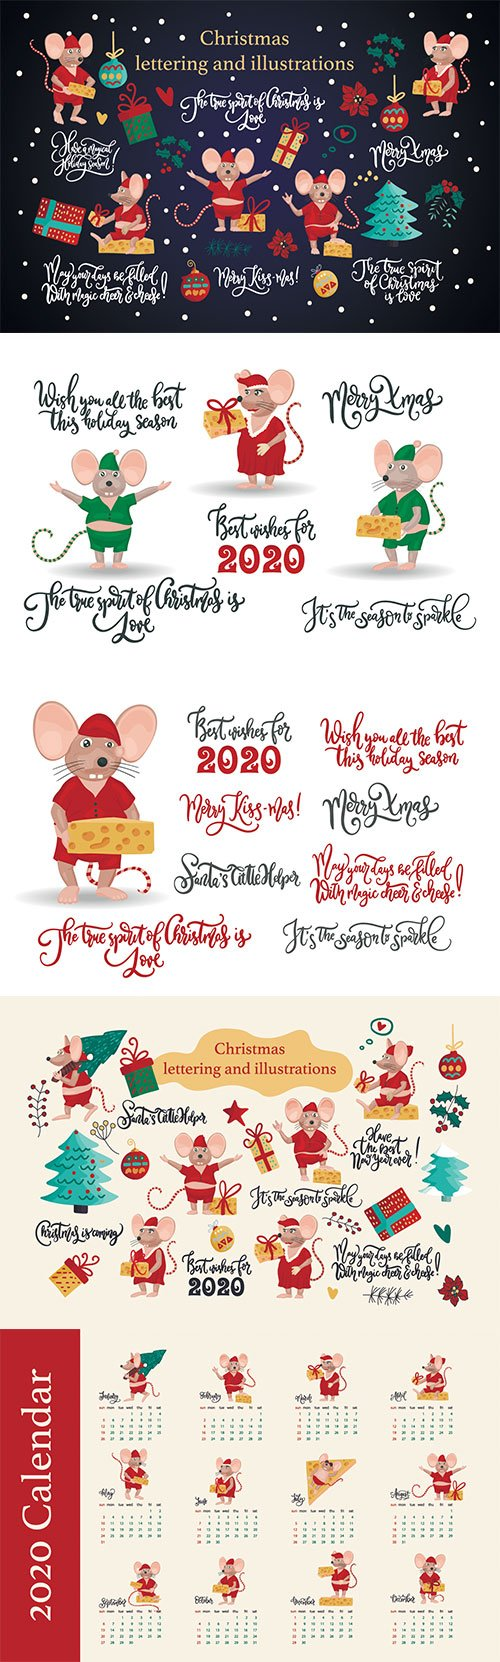 Christmas greeting illustrations with cute mice, decorations and lettering quotes